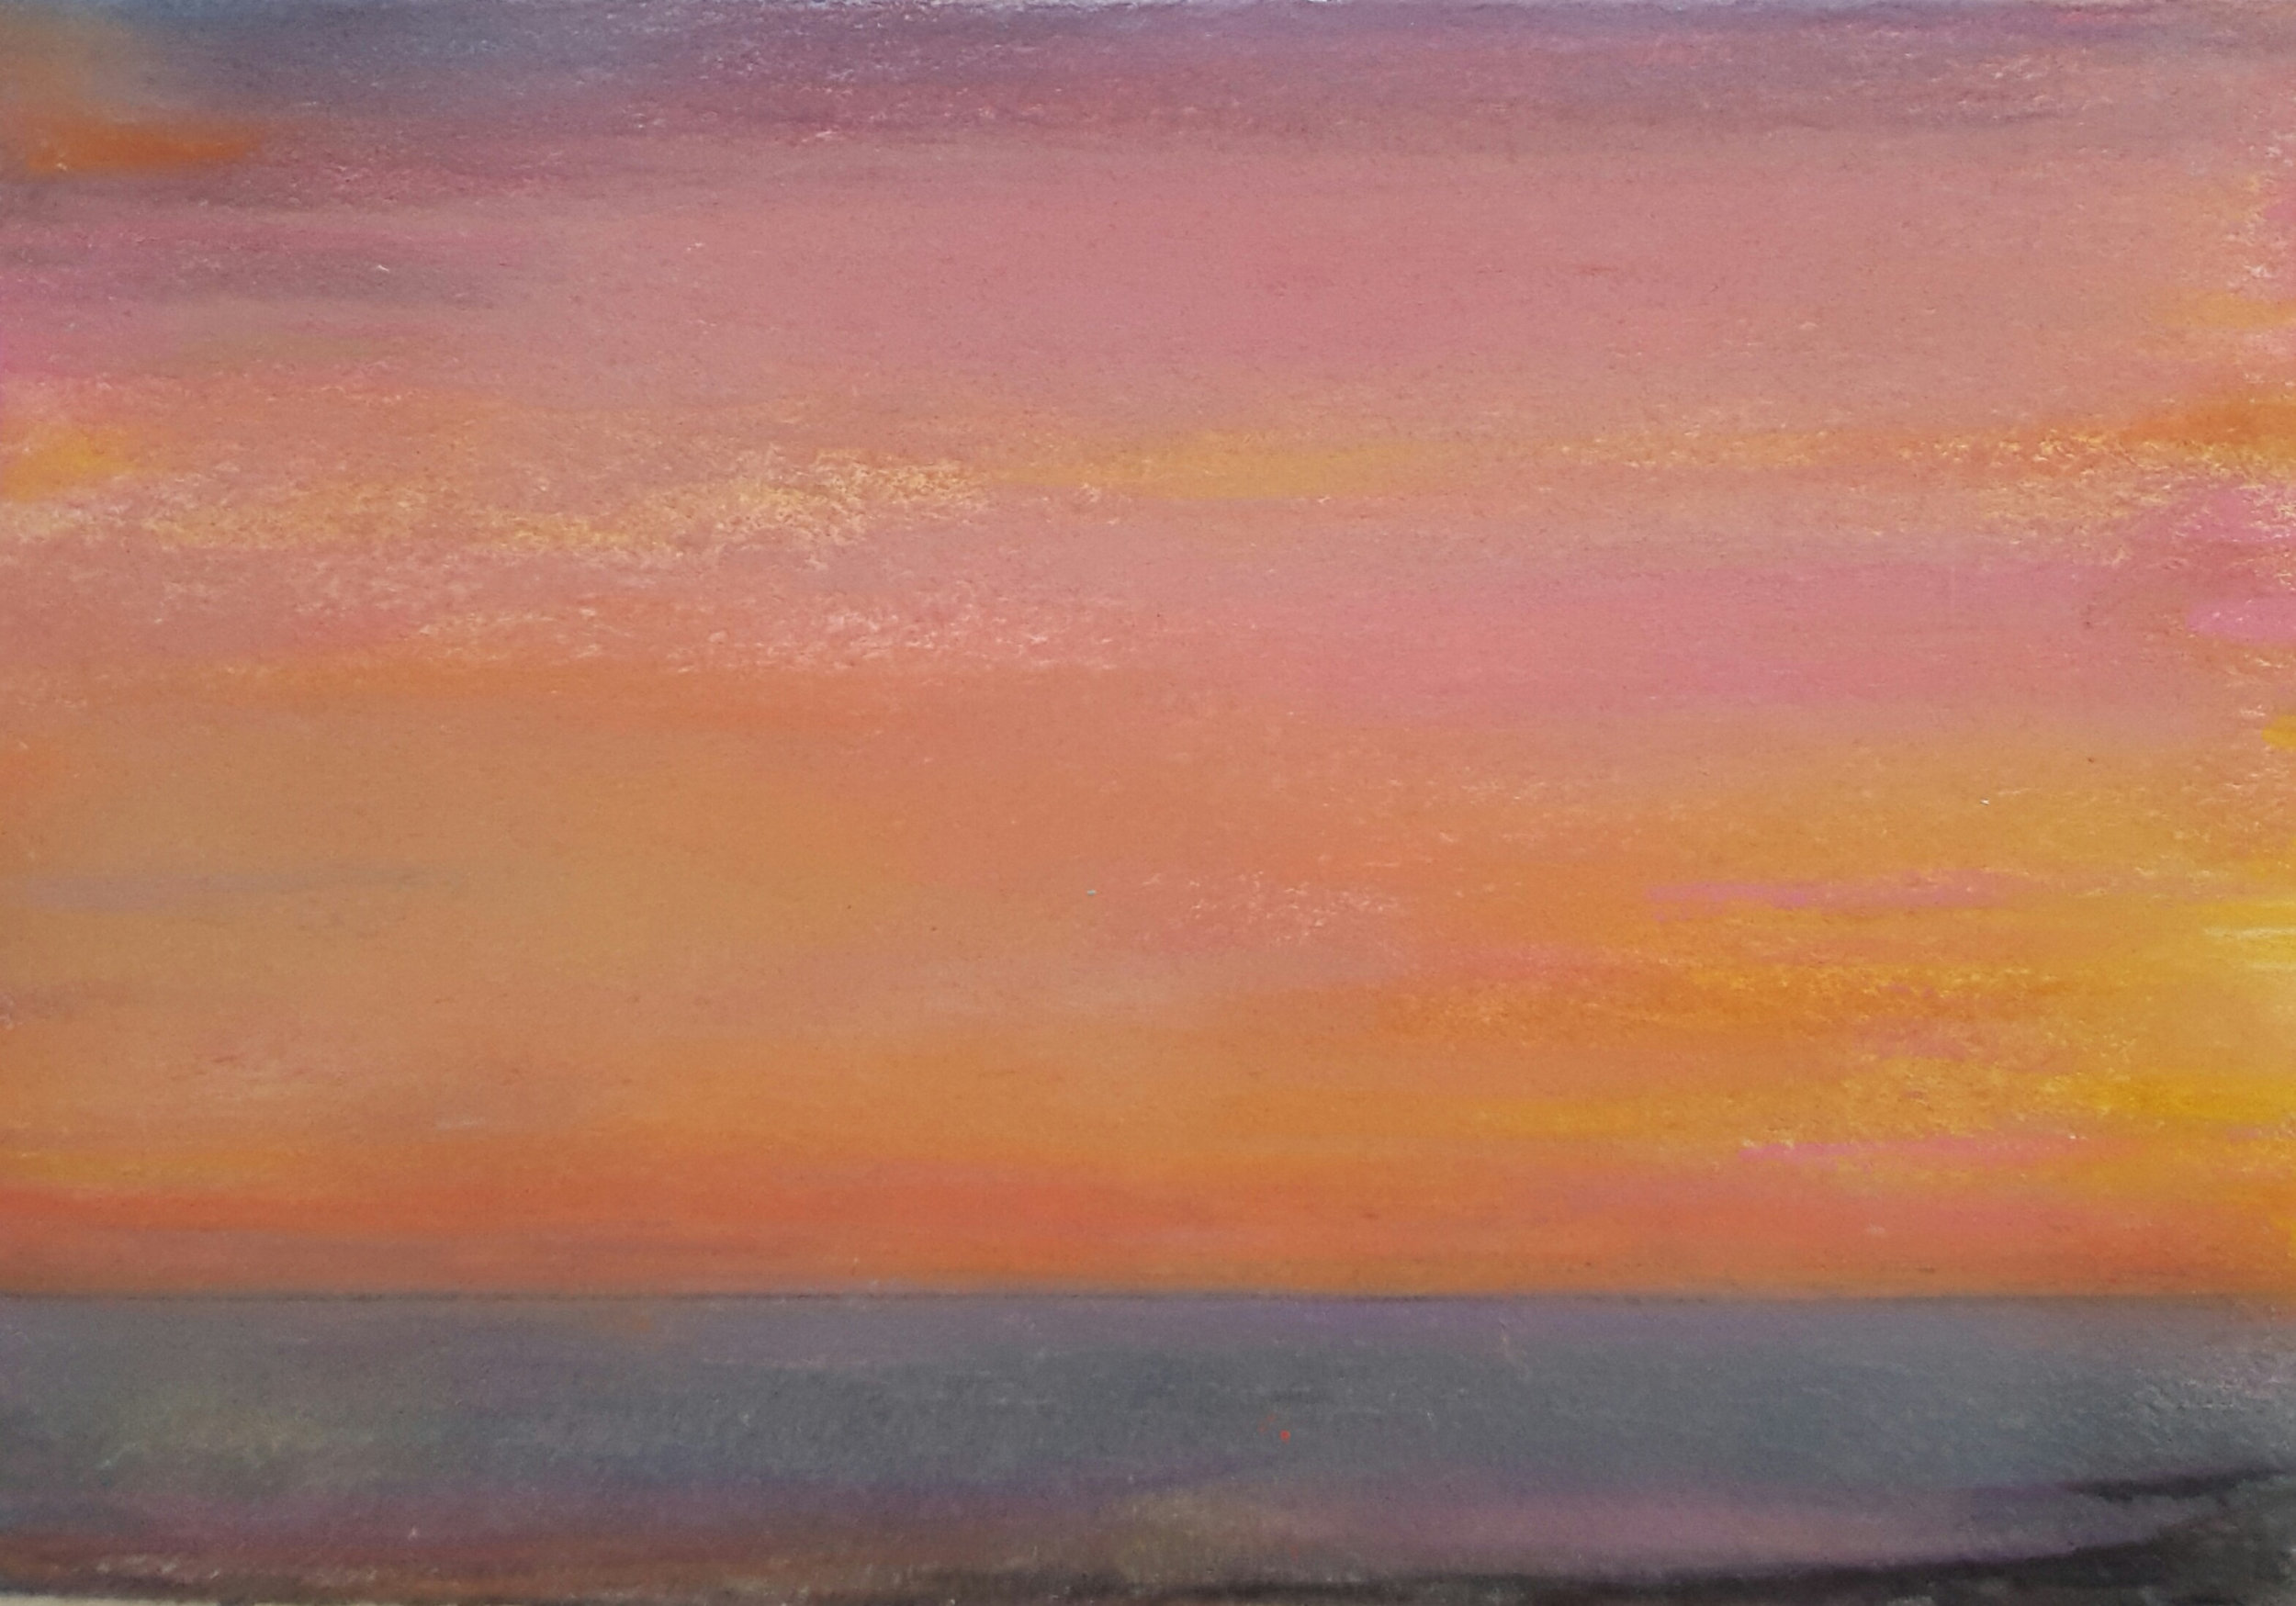 34 Sunset, 15x21cm, pastel and mixed media on paper